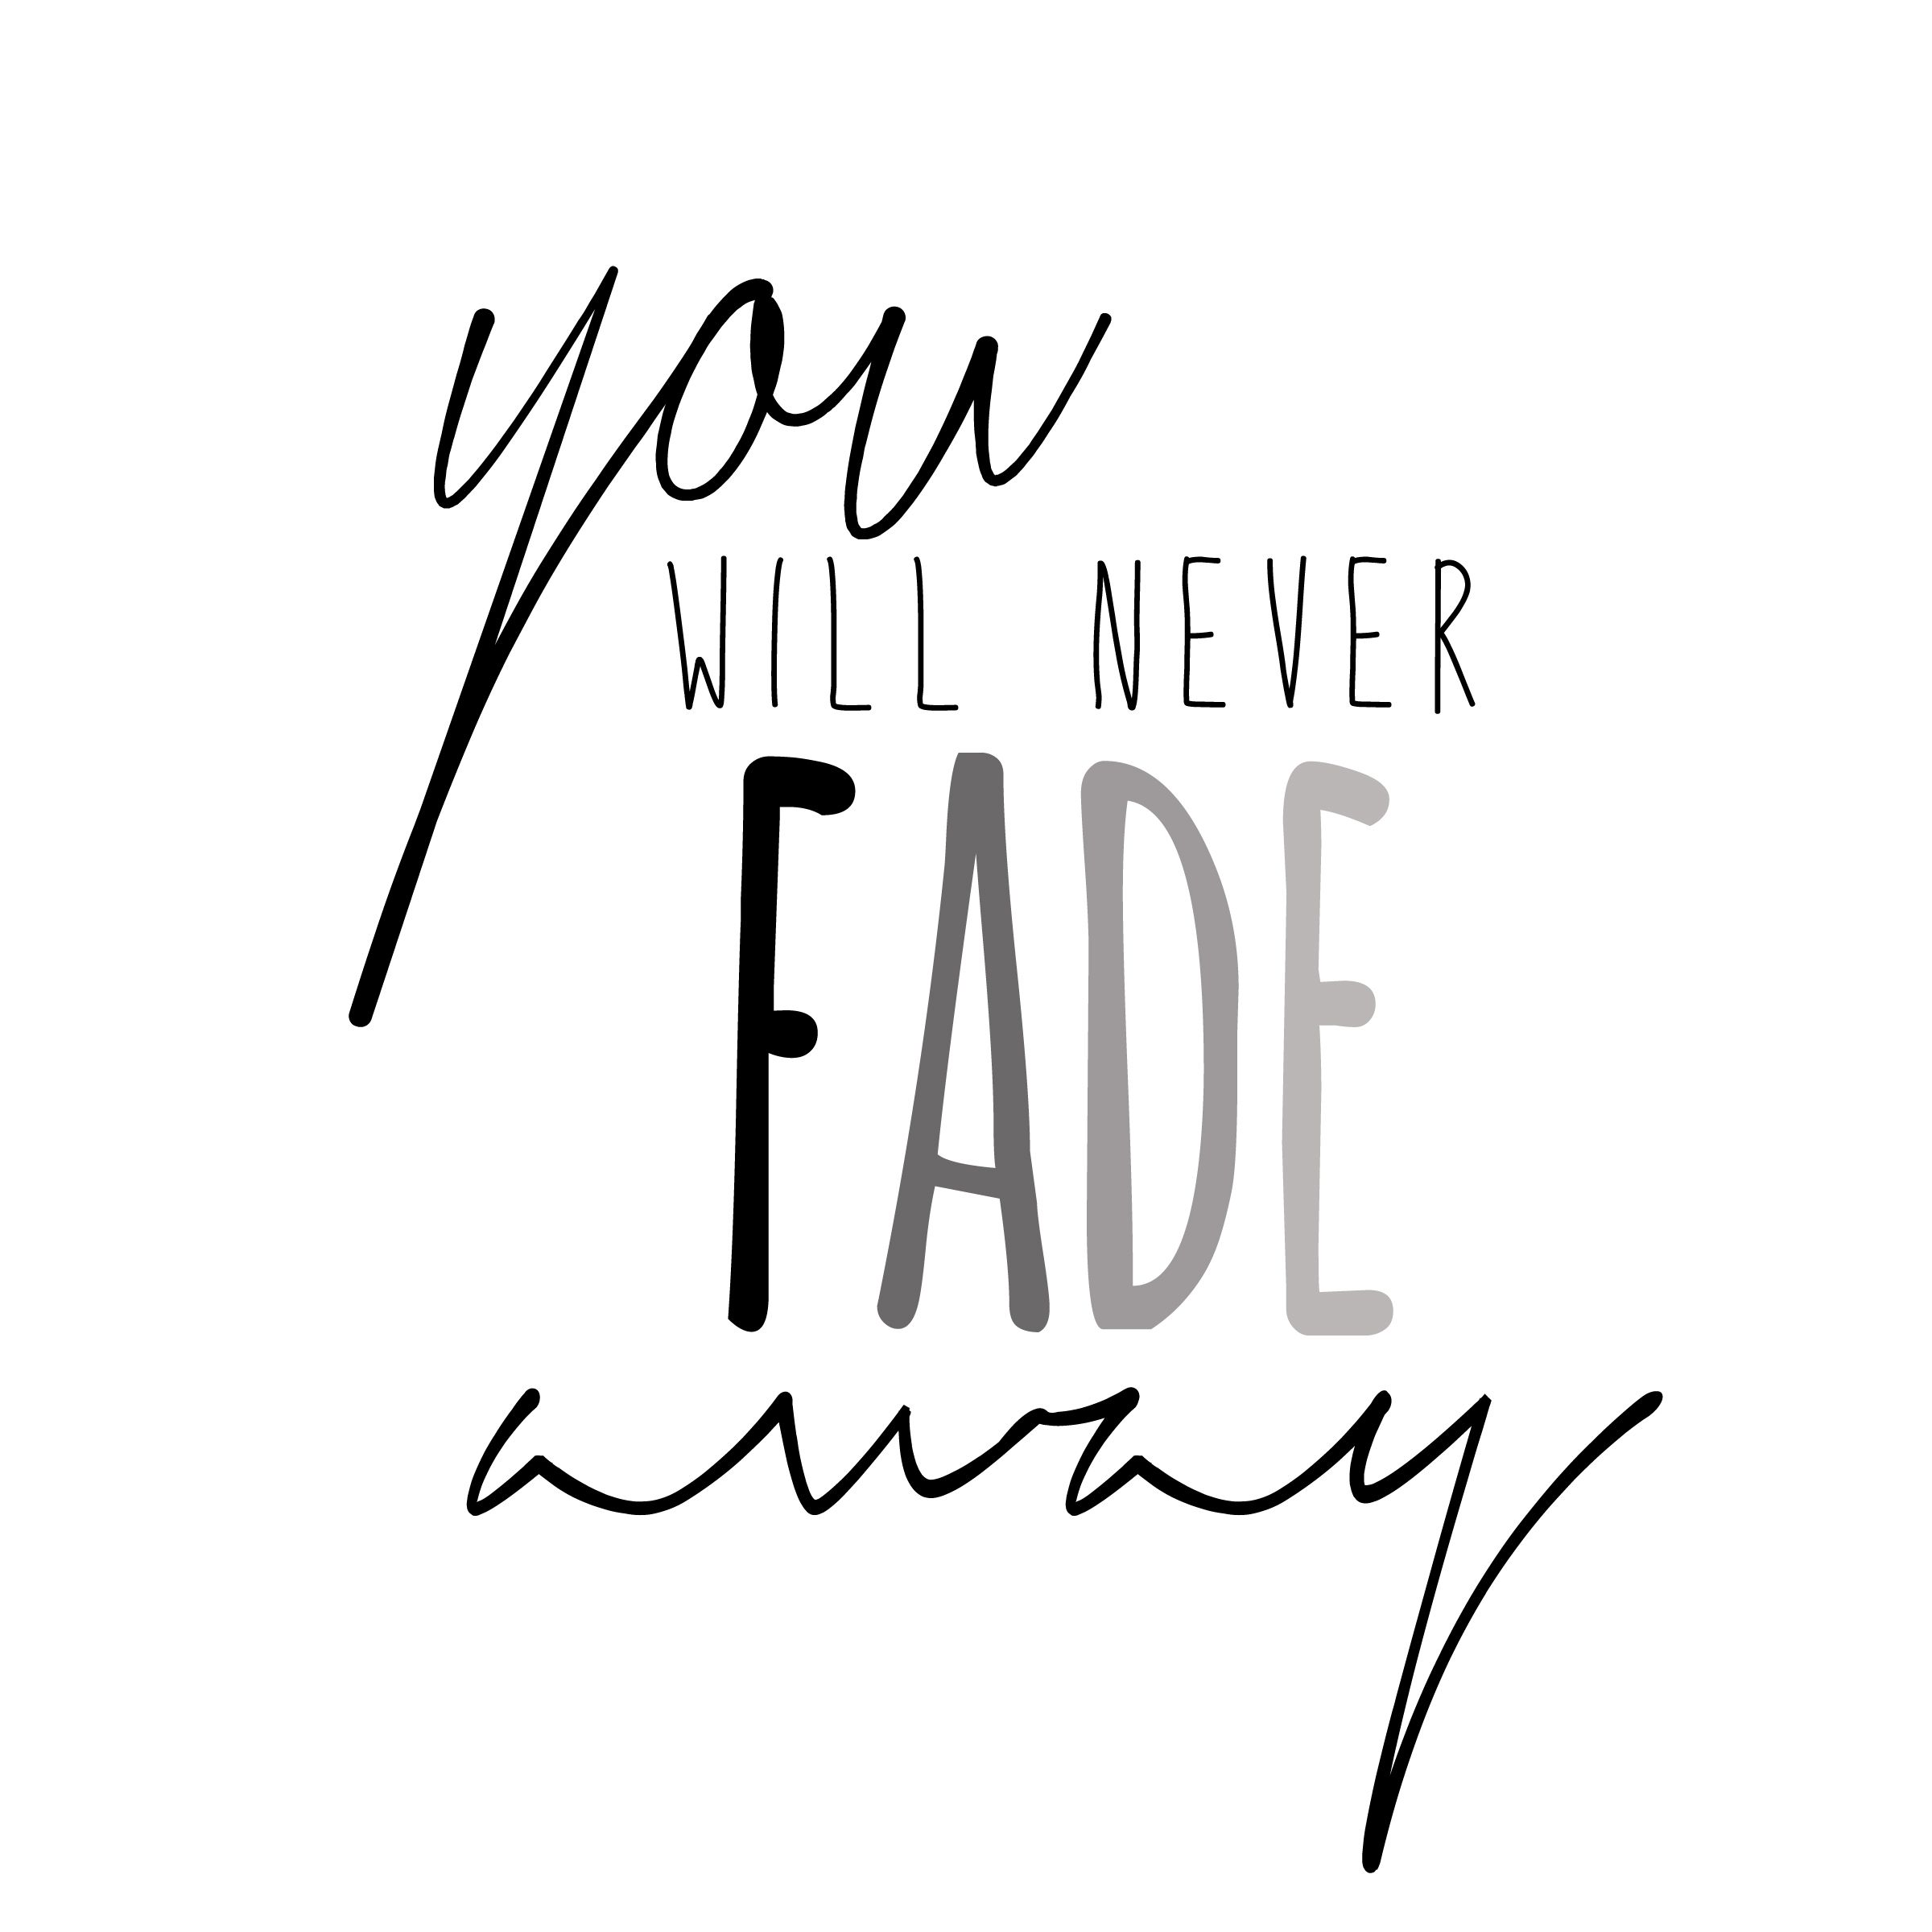 Free Weights Your Design Lyrics: You Will Never Fade Away Hillsong